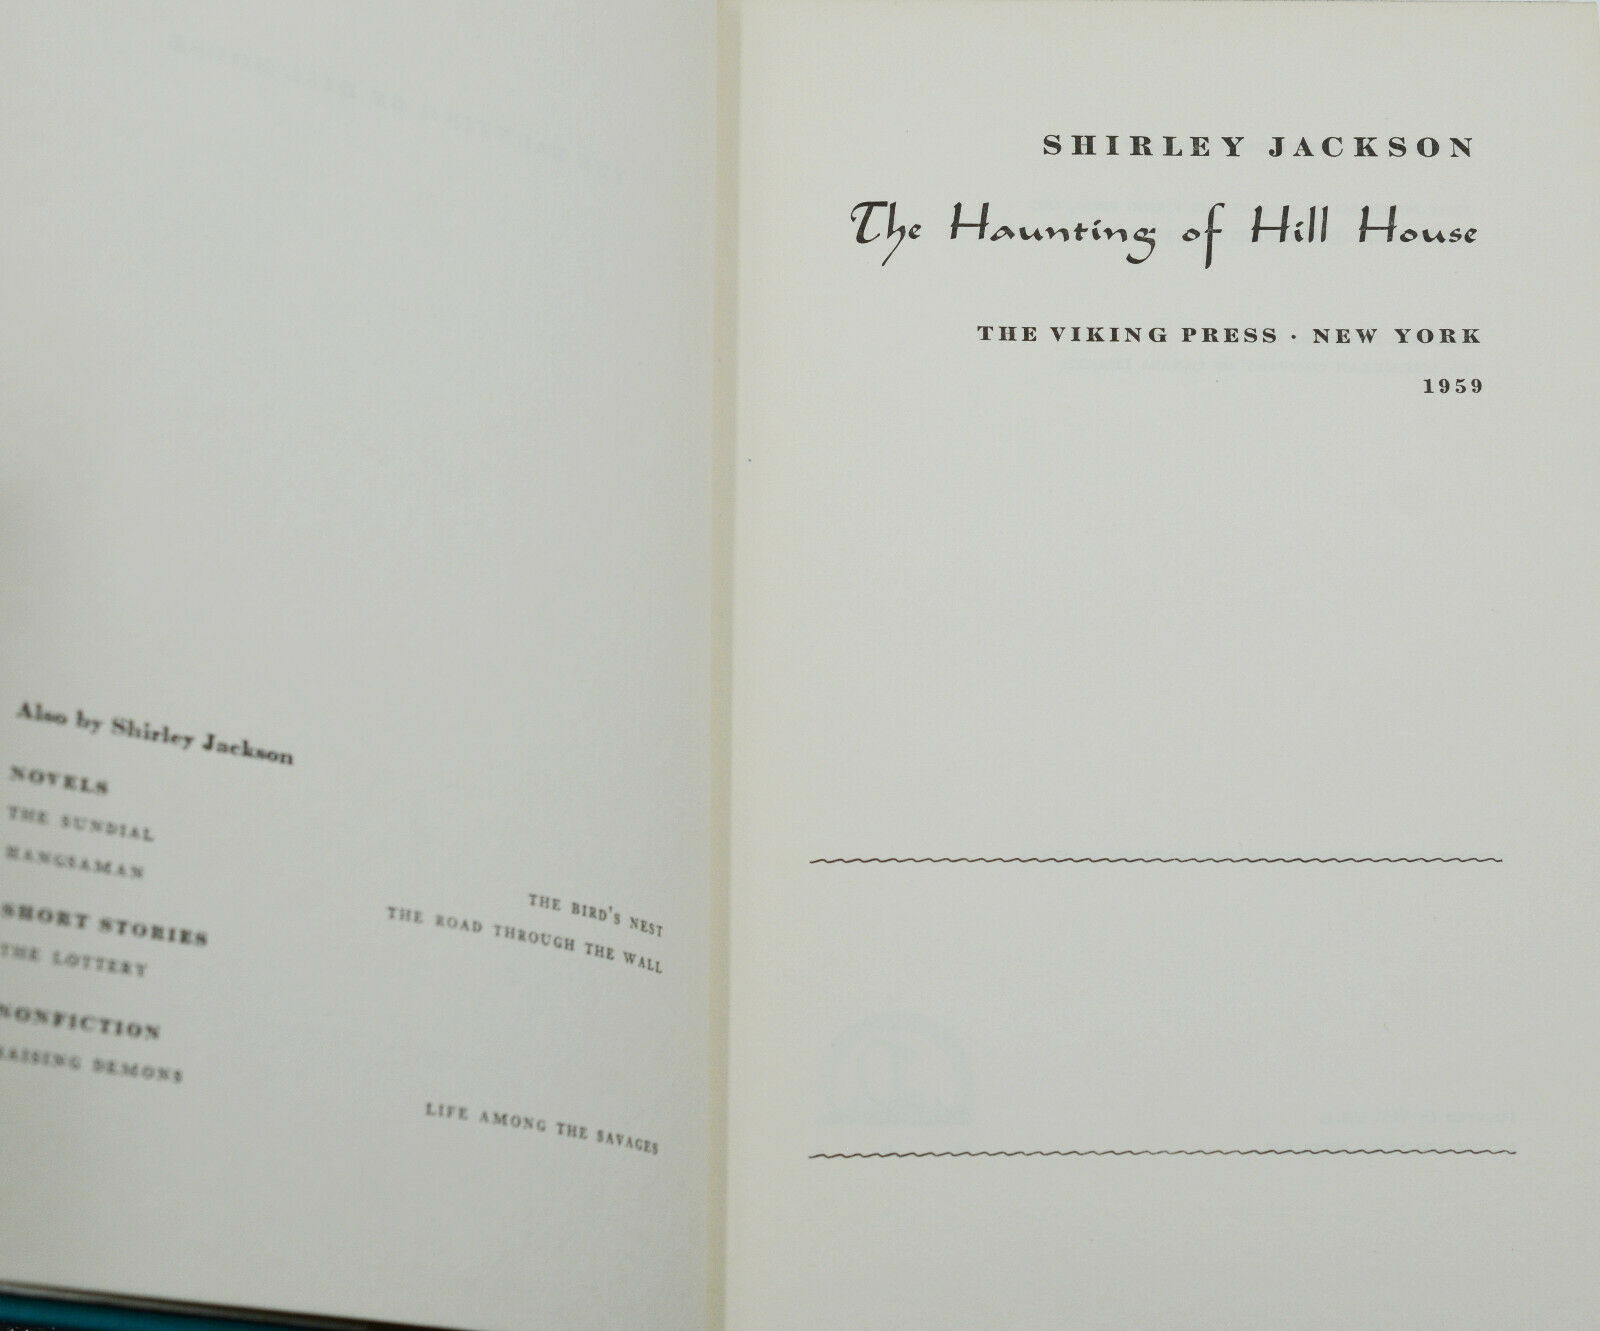 The Haunting Of Hill House By Jackson Shirley Very Good 1959 First Edition Burnside Rare Books Abaa